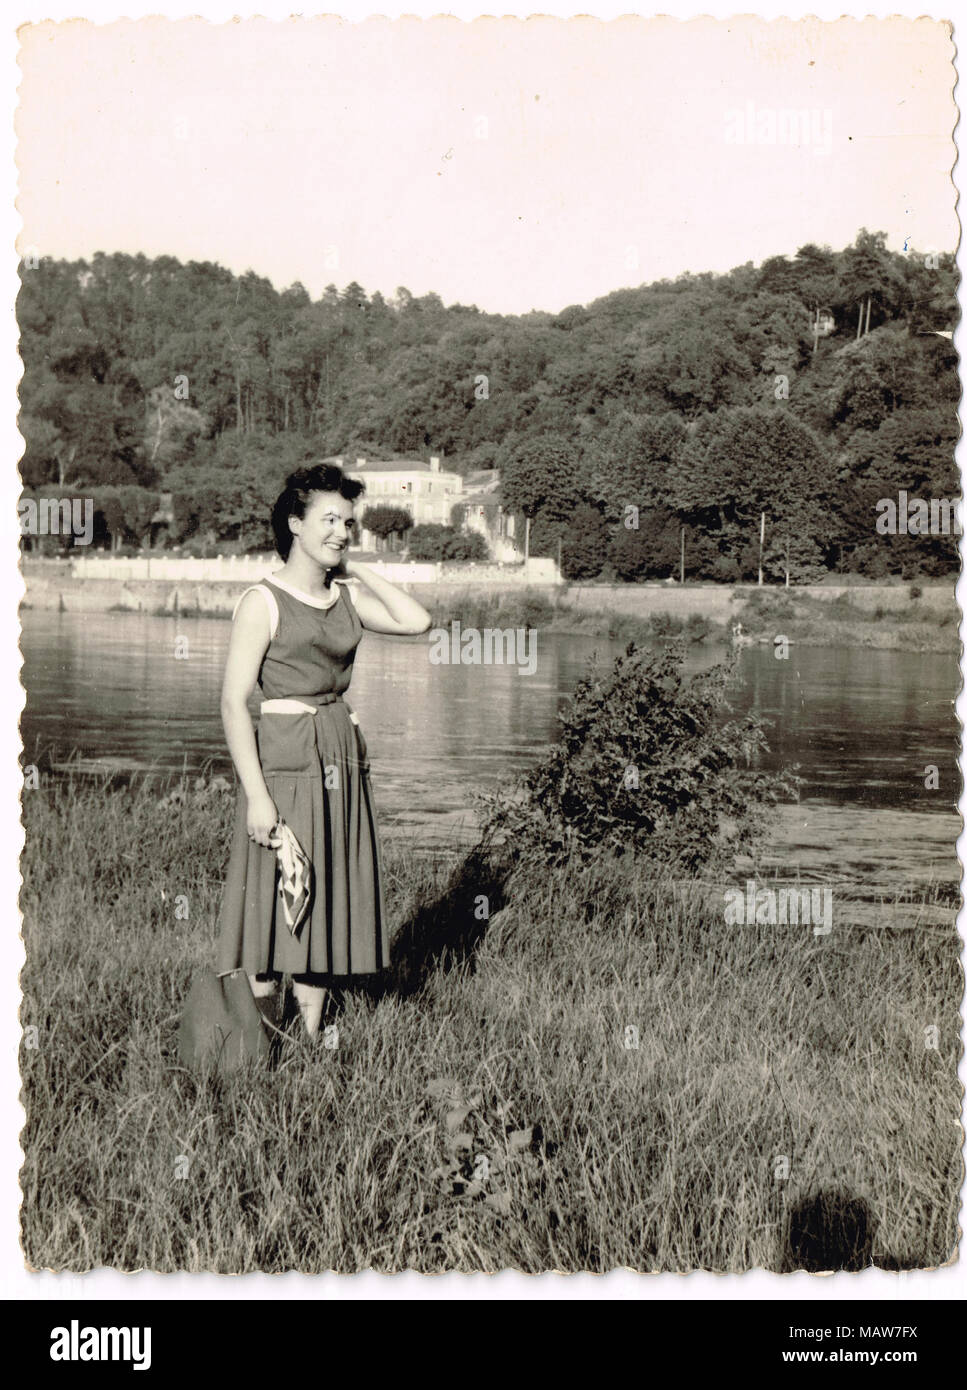 Lifestyle in the 50ies: a young woman stands near a river, France - Stock Image